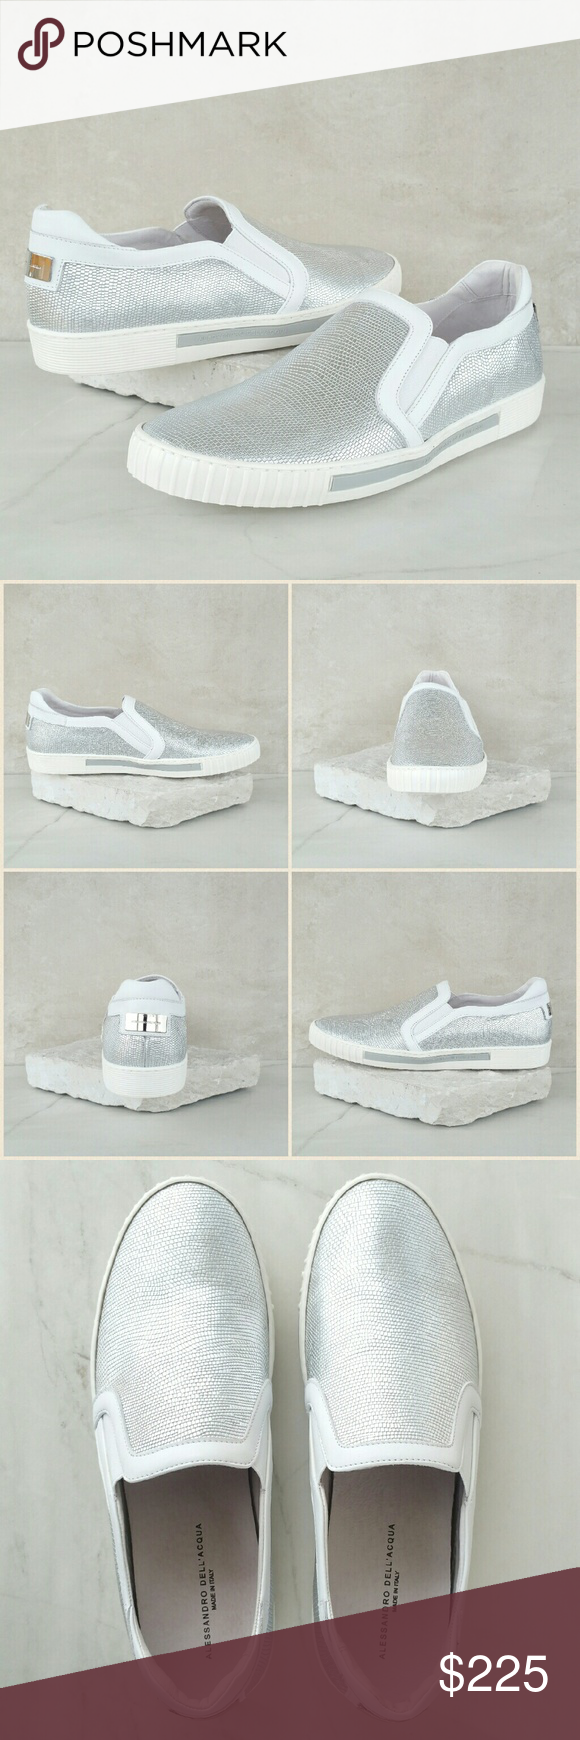 "ALESSANDRO DELL'ACQUA silver leather sneakers Snakeskin embossed calf leather silver sneakers. Rounded toe. Slip on construction with elastic opening. White leather trim. Silver metal hardware with logo at the back of shoes. Leather upper, leather lining, leather insole, rubber outsole. Approximately 1"" platform sole. Made in Italy. Size: IT 44 / US 11. Color: silver / white.  NWB. Never worn. Comes with original box and dust bag. Can provide more pictures and info upon request. Reasonable…"